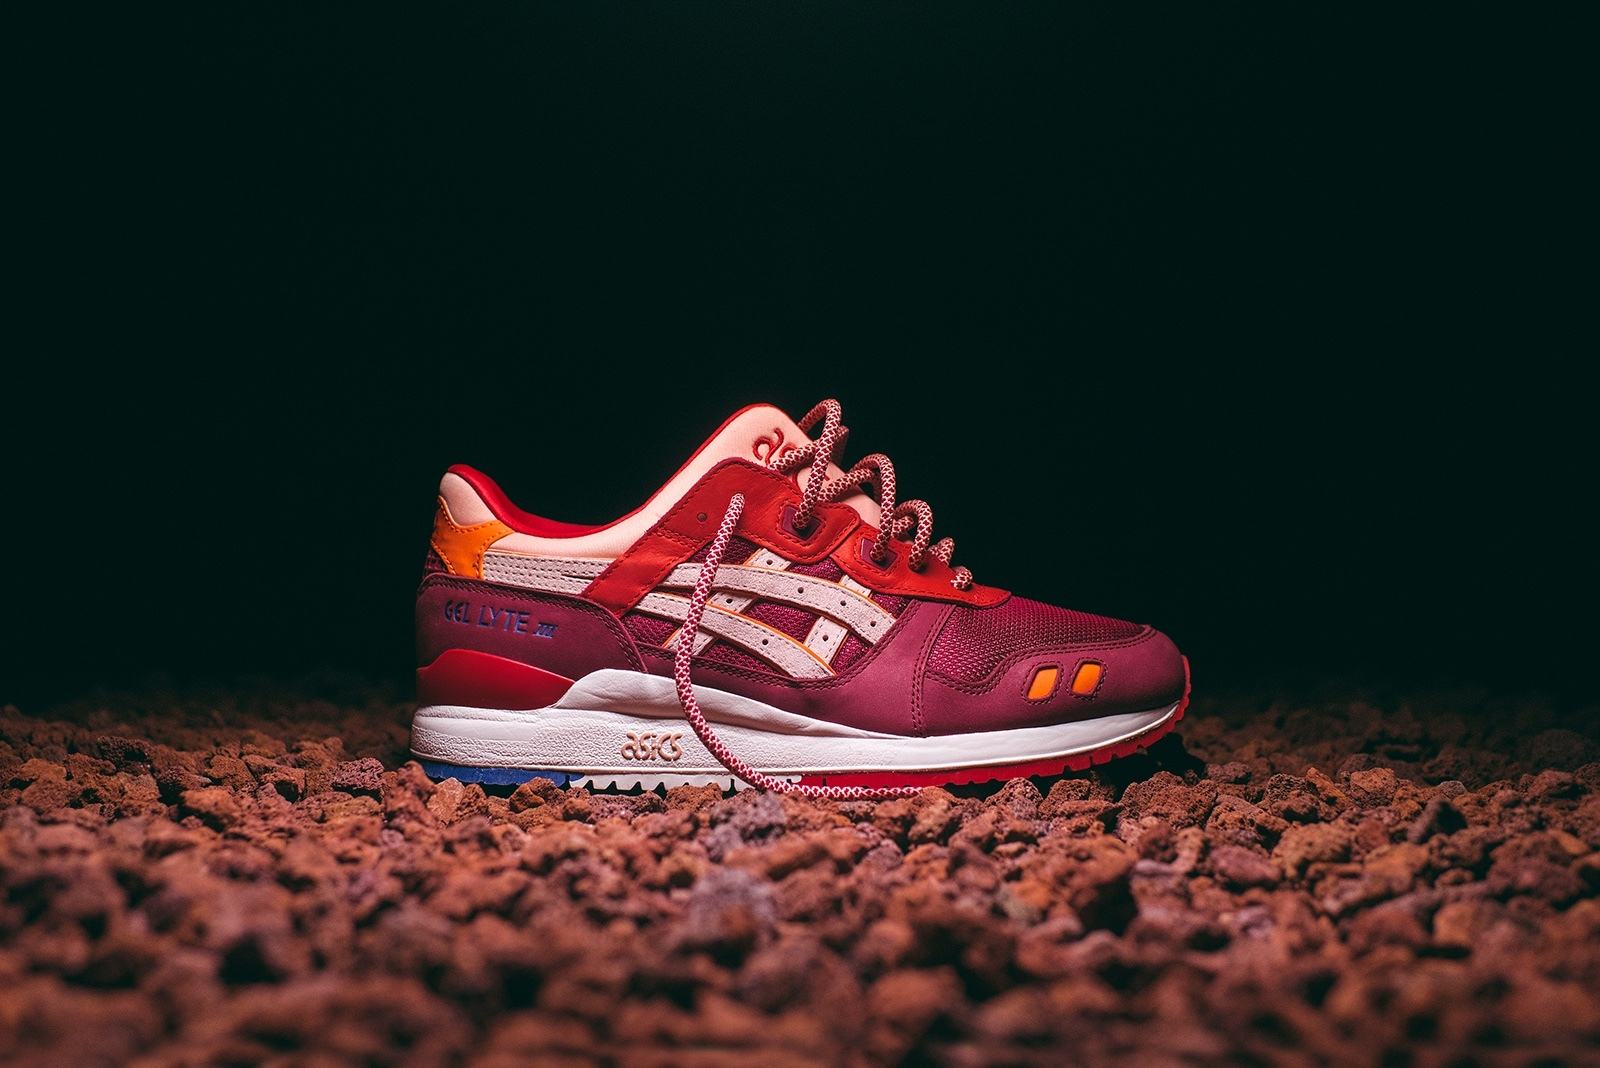 ronnie-fieg-asics-volcano-2-0-collection-1